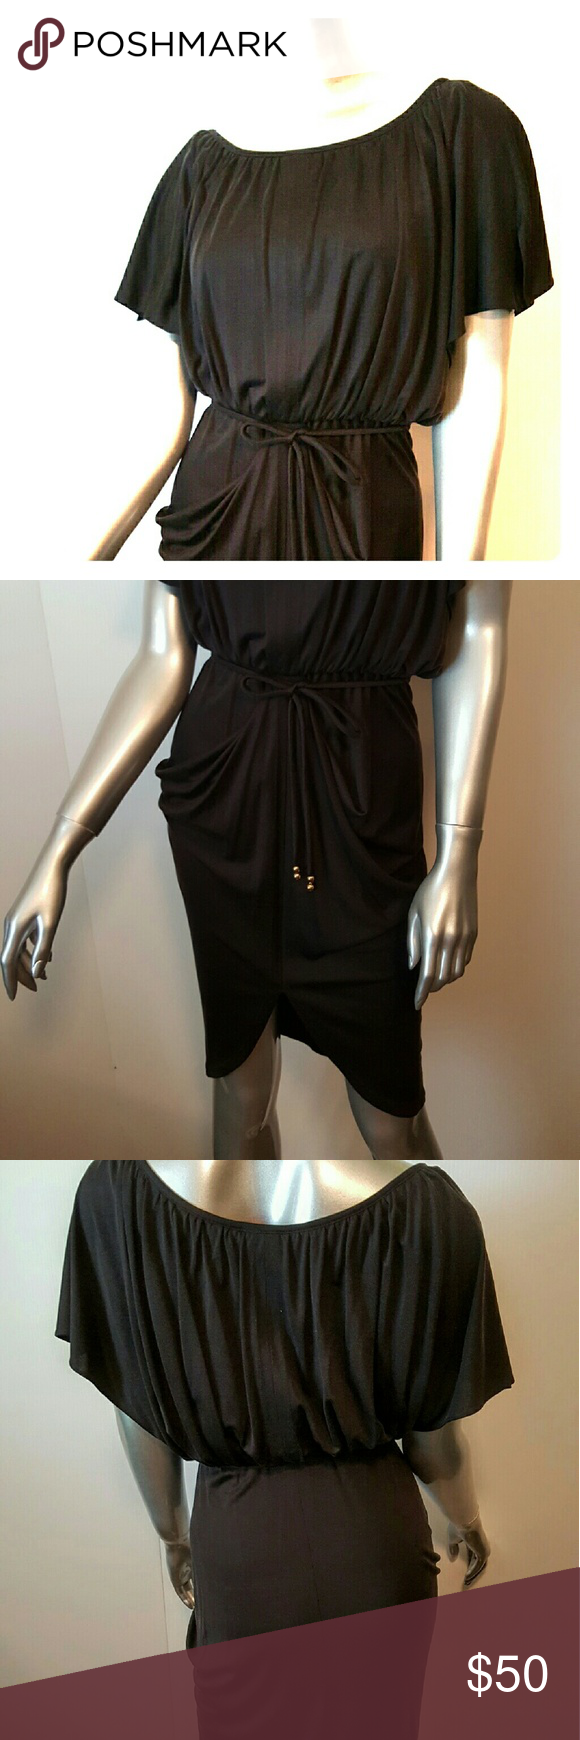 """YOANA BARASCHI for Anthropologie Silk Dress Sz XS Stunning Dress!   Prestine condition-maybe worn once   Blouson style   Elasticized waist with belt detailed with 2 gold beads at ends   Beautiful Grecian draped bottom   Fabrication- 100% Silk  Color- True Black   Measurements- Chest =31""""Waist=12""""   Feel free to contact me with any questions or concerns prior to purchase   Thank you for looking in my closet! kostkutter Anthropologie Dresses"""